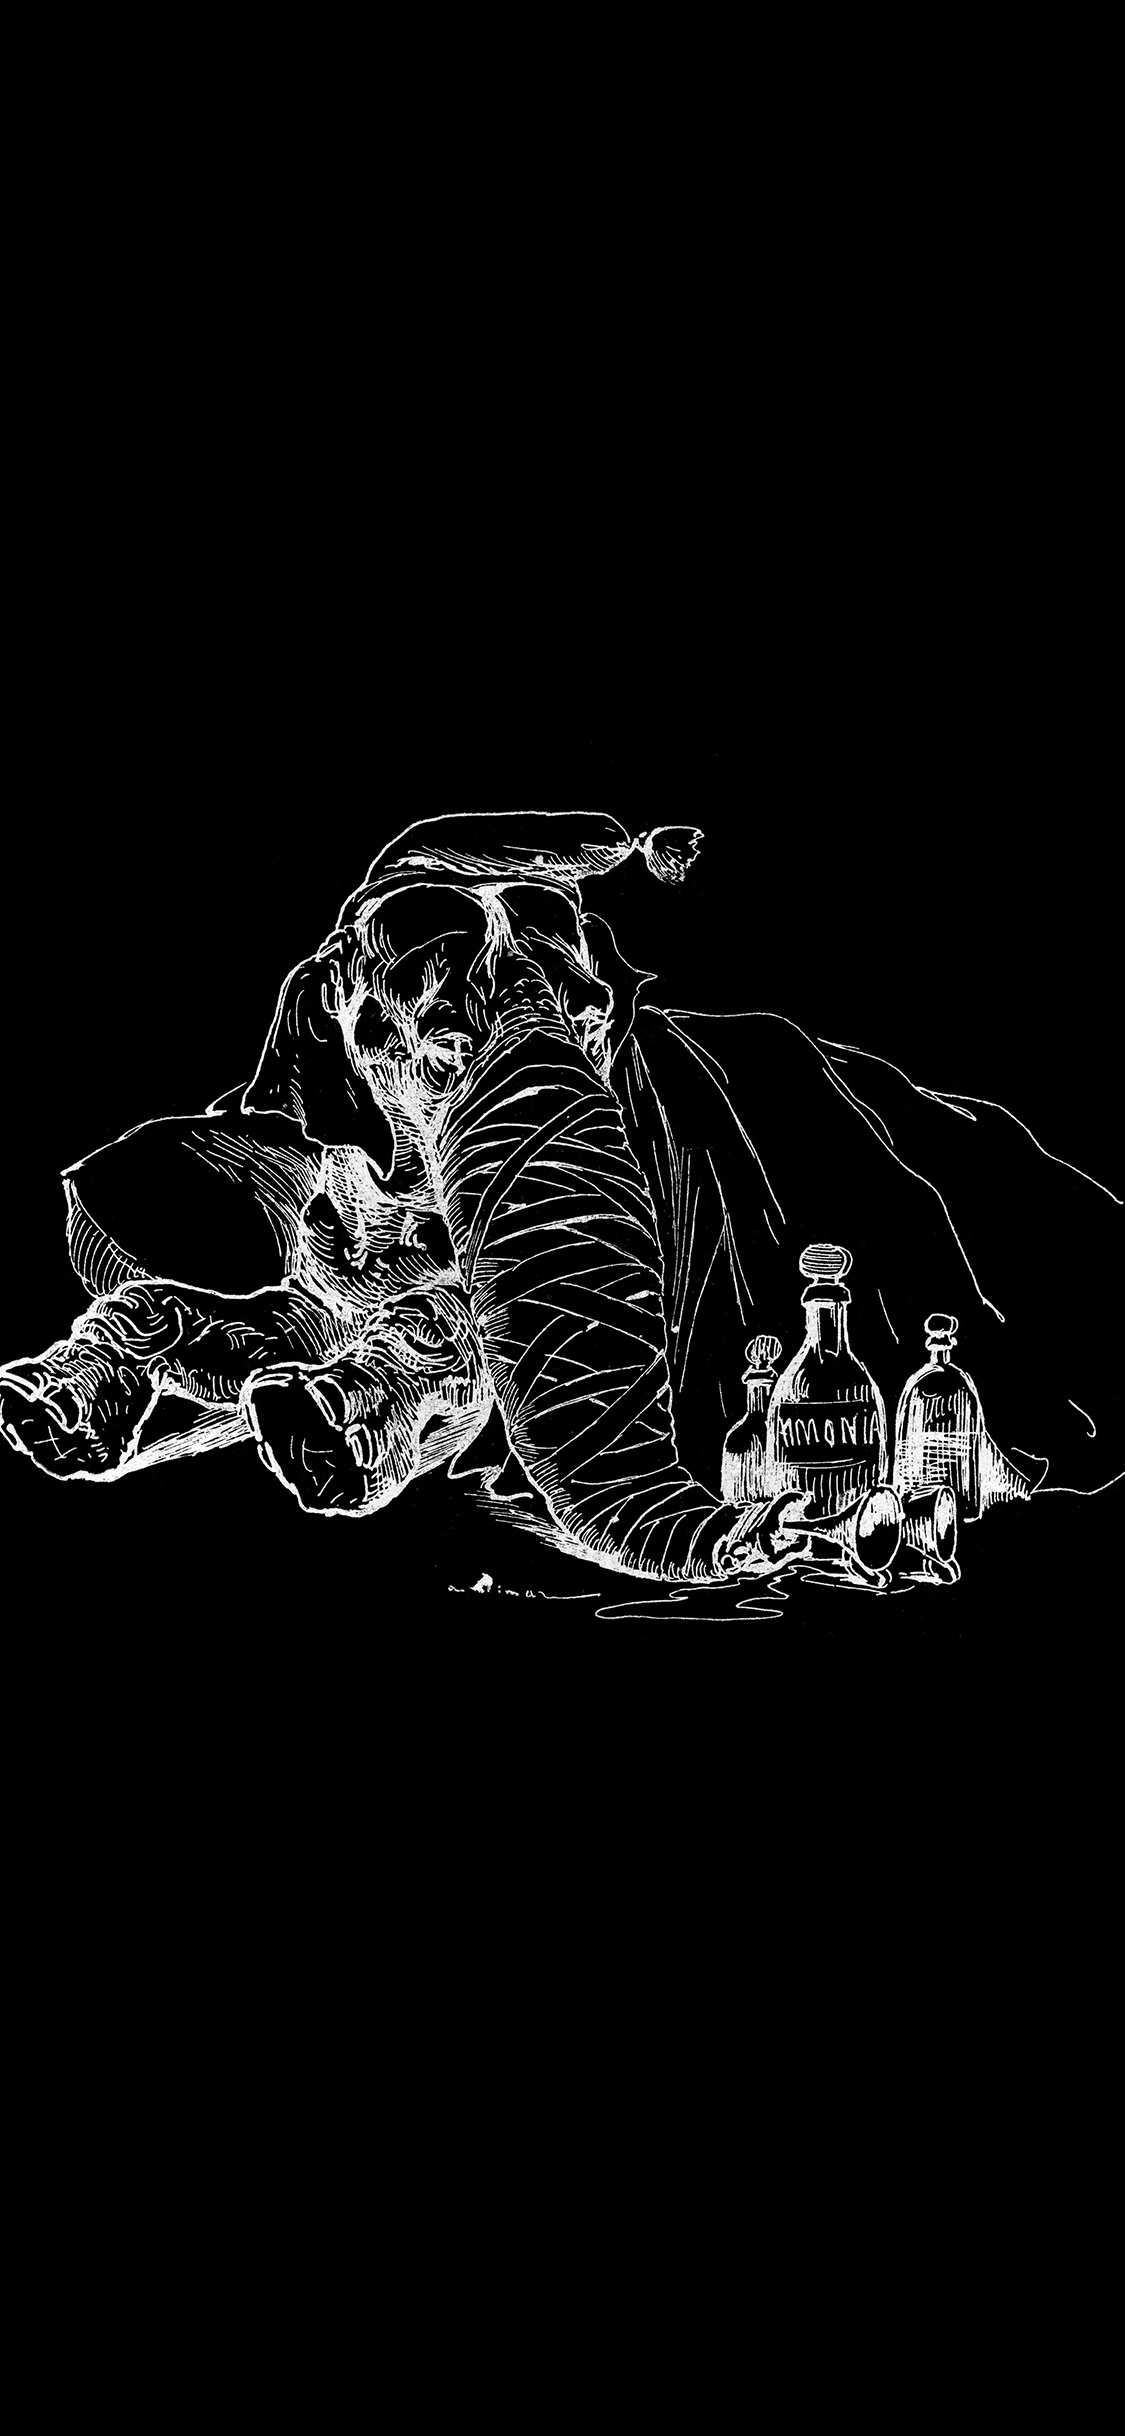 At62 elephant drawing morning bw dark animal art - Black and white hd wallpapers black background ...